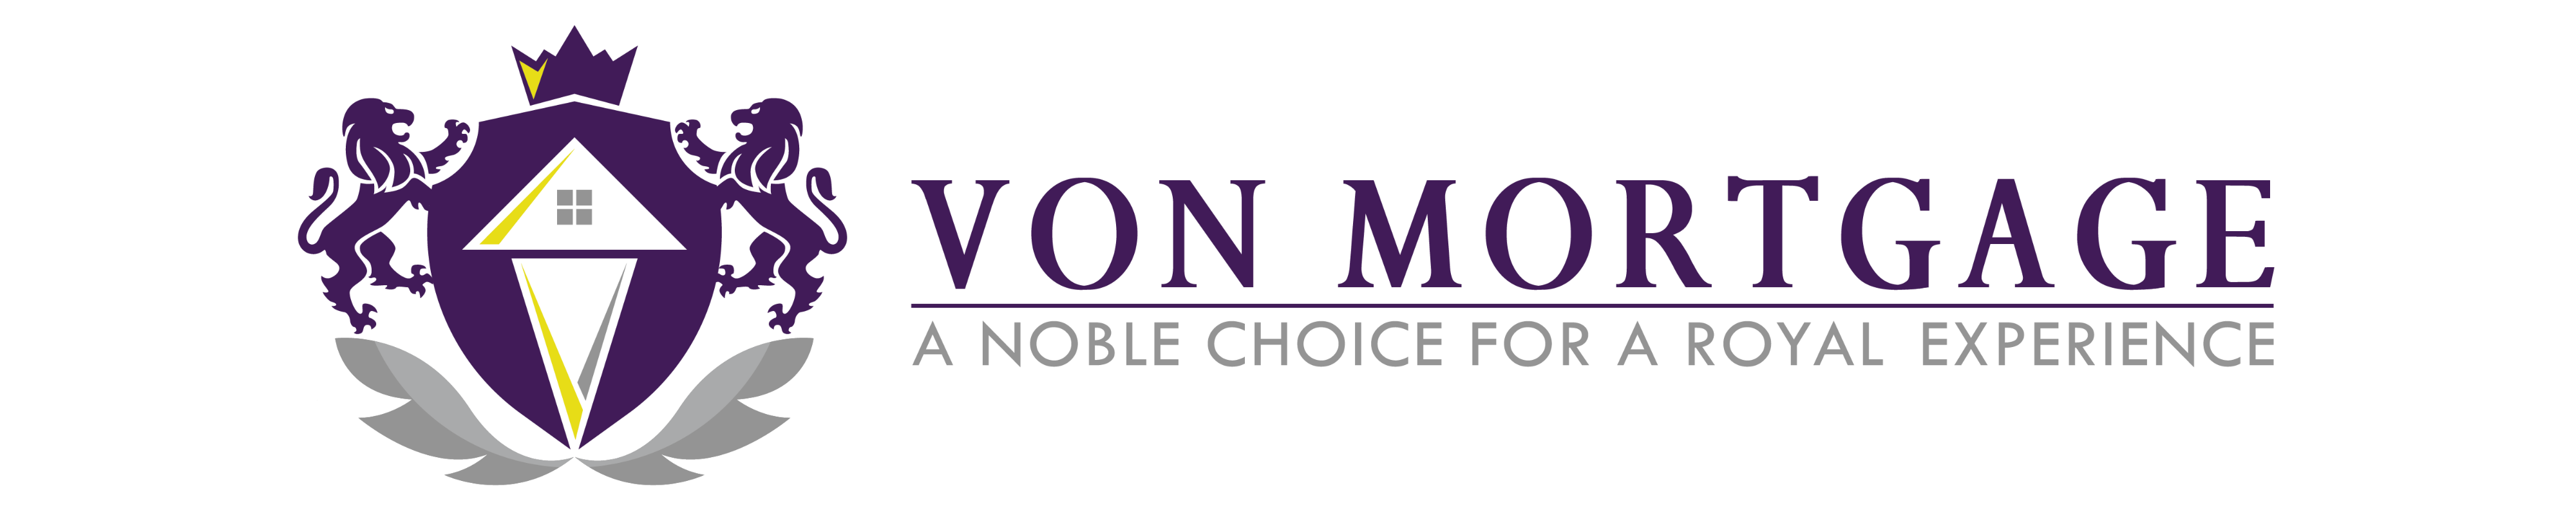 Von Mortgage Announces New Office Opening in Wakarusa, Indiana